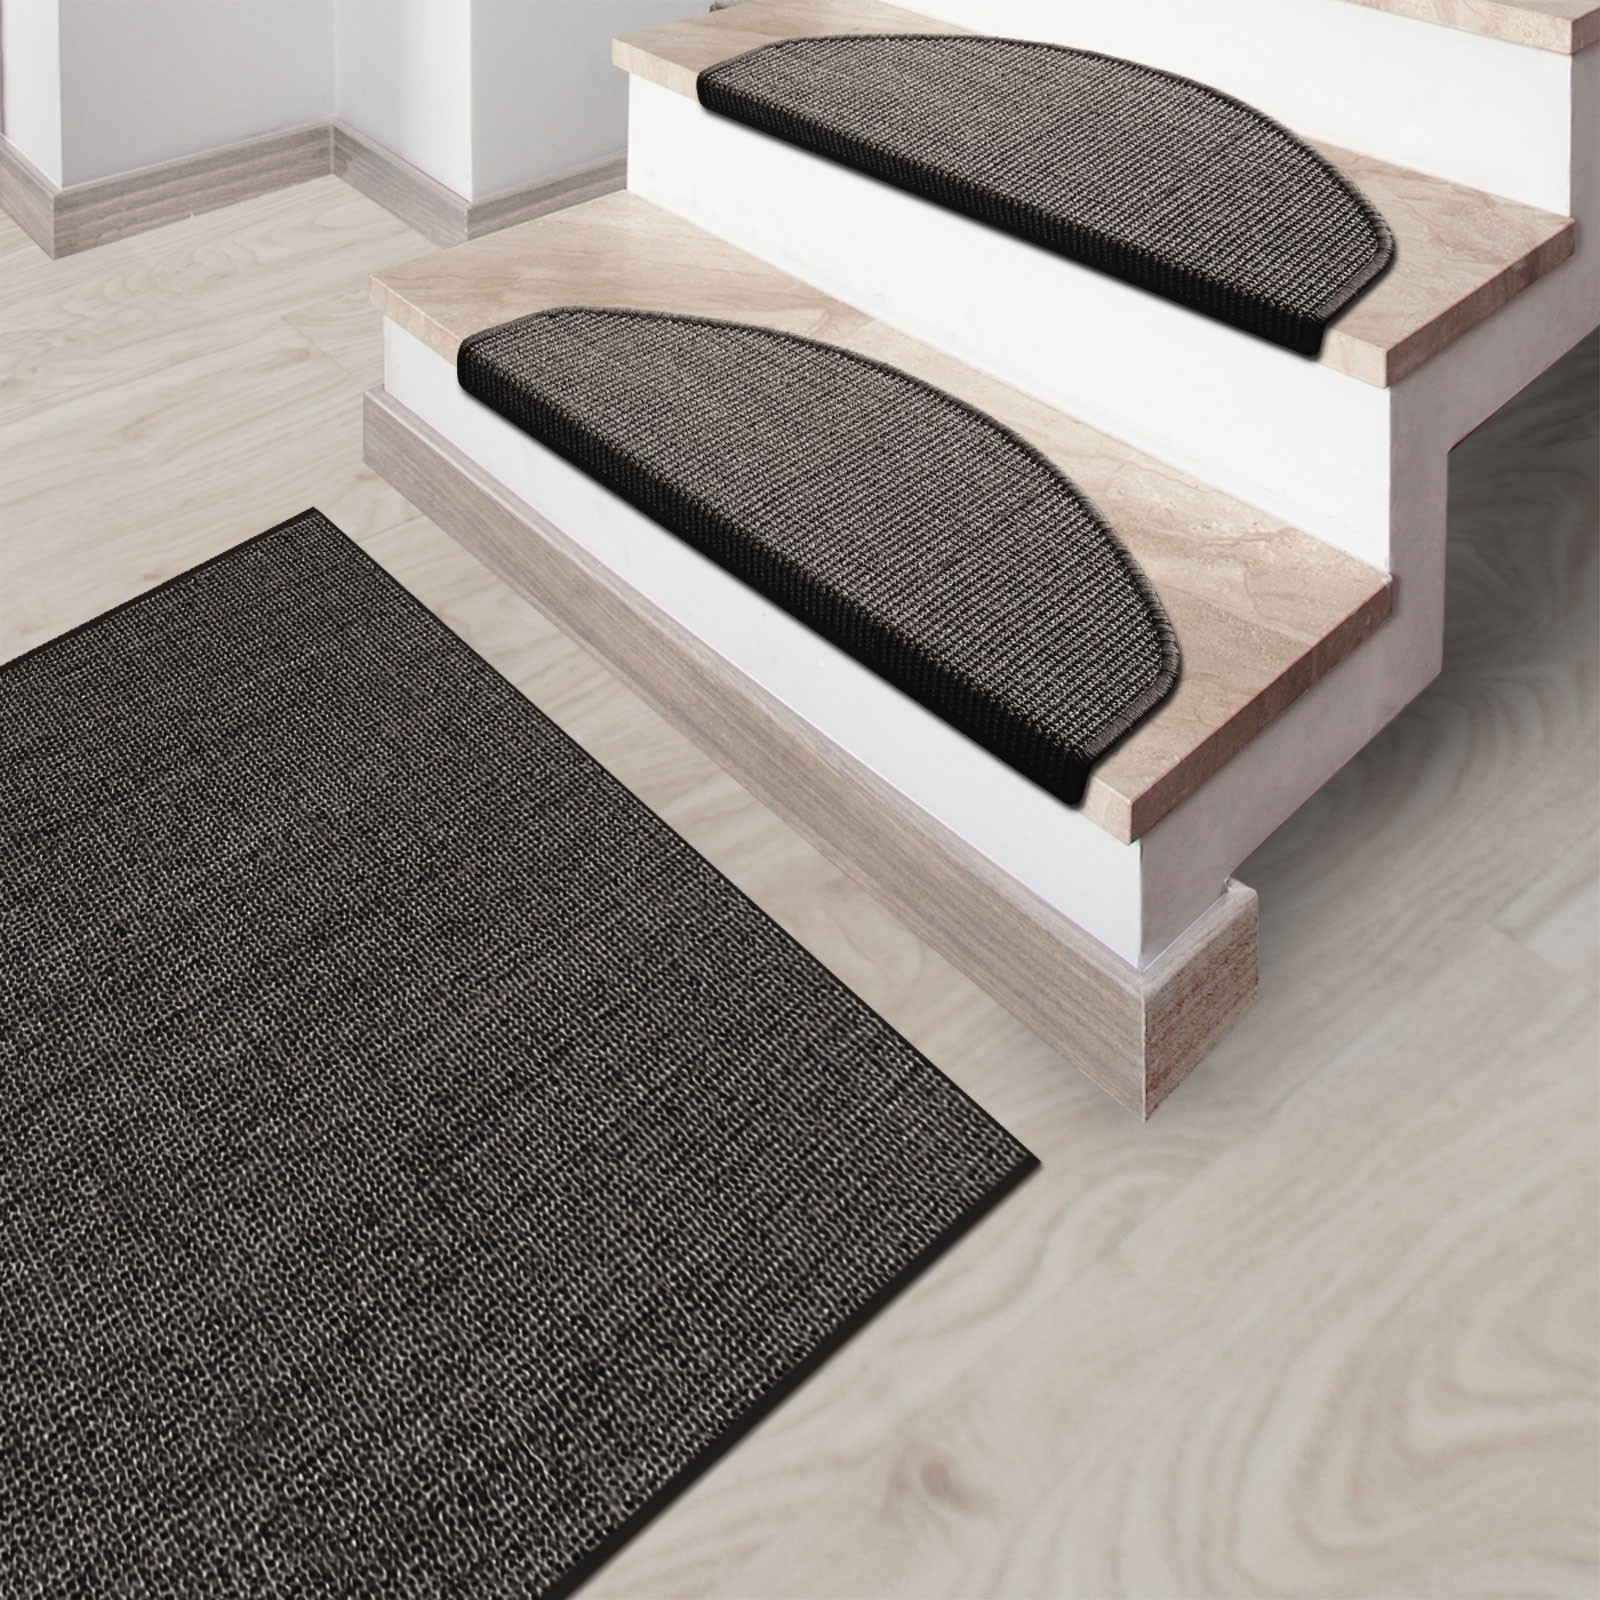 Sisal Rug Sylt Grey Stair Treads Also Available For Natural Stair Tread Rugs (View 20 of 20)